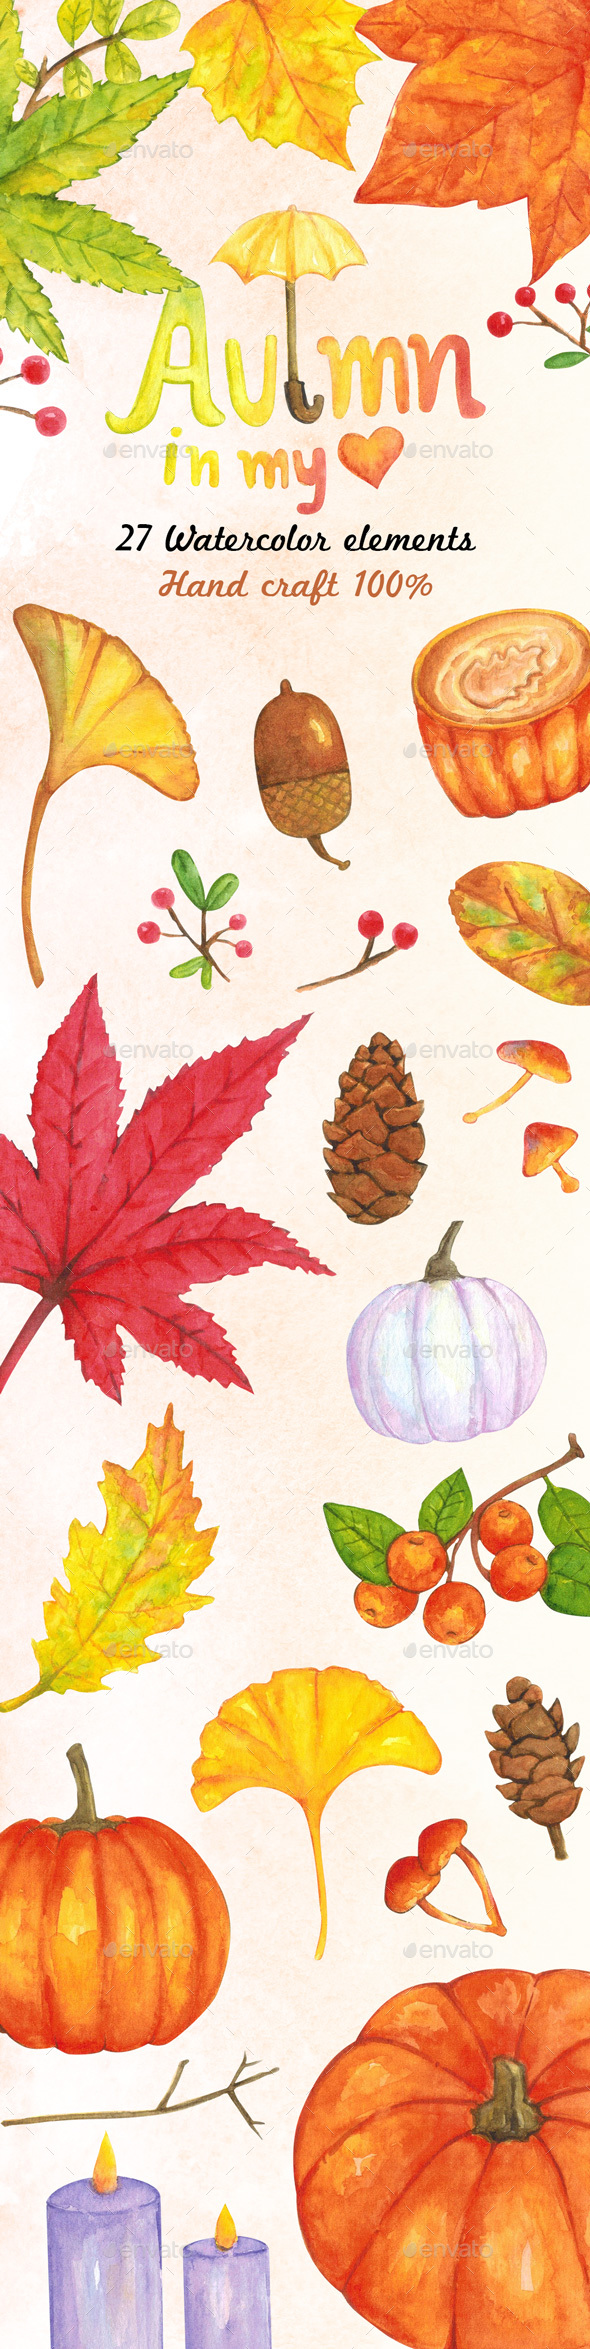 Watercolor Collection of Autumn and Fall Elements - Illustrations Graphics